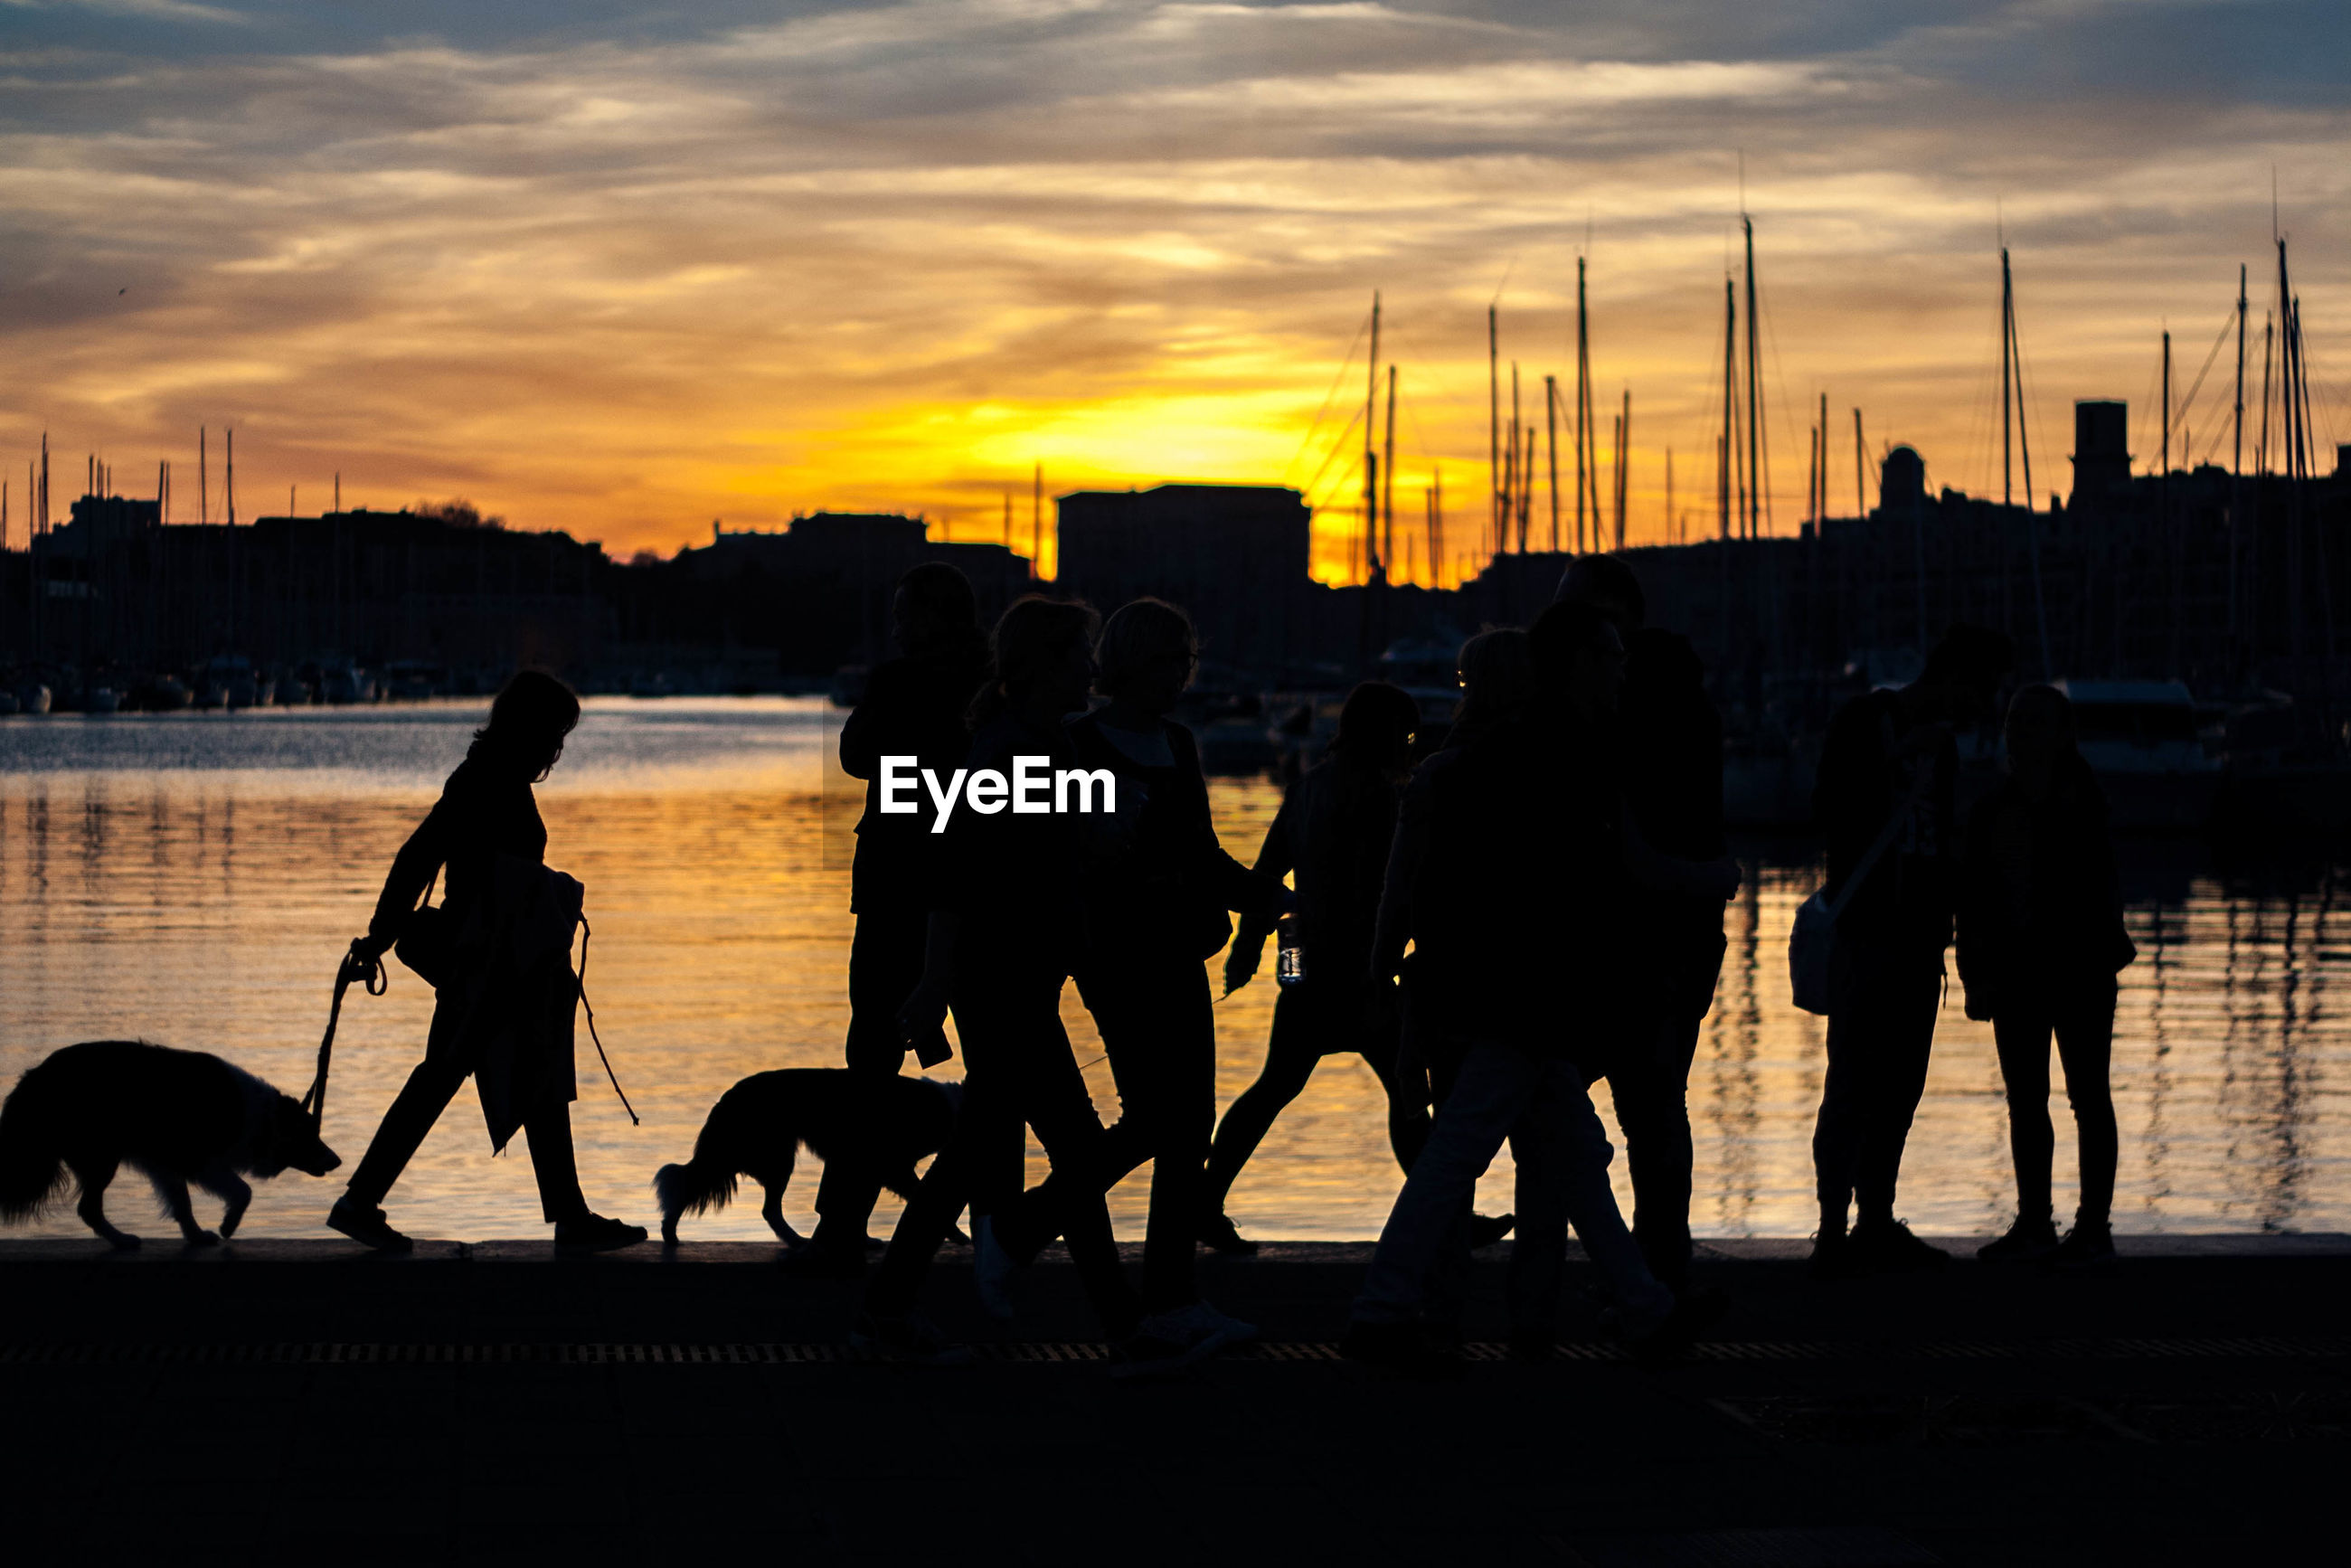 SILHOUETTE OF PEOPLE WITH DOGS IN BACKGROUND